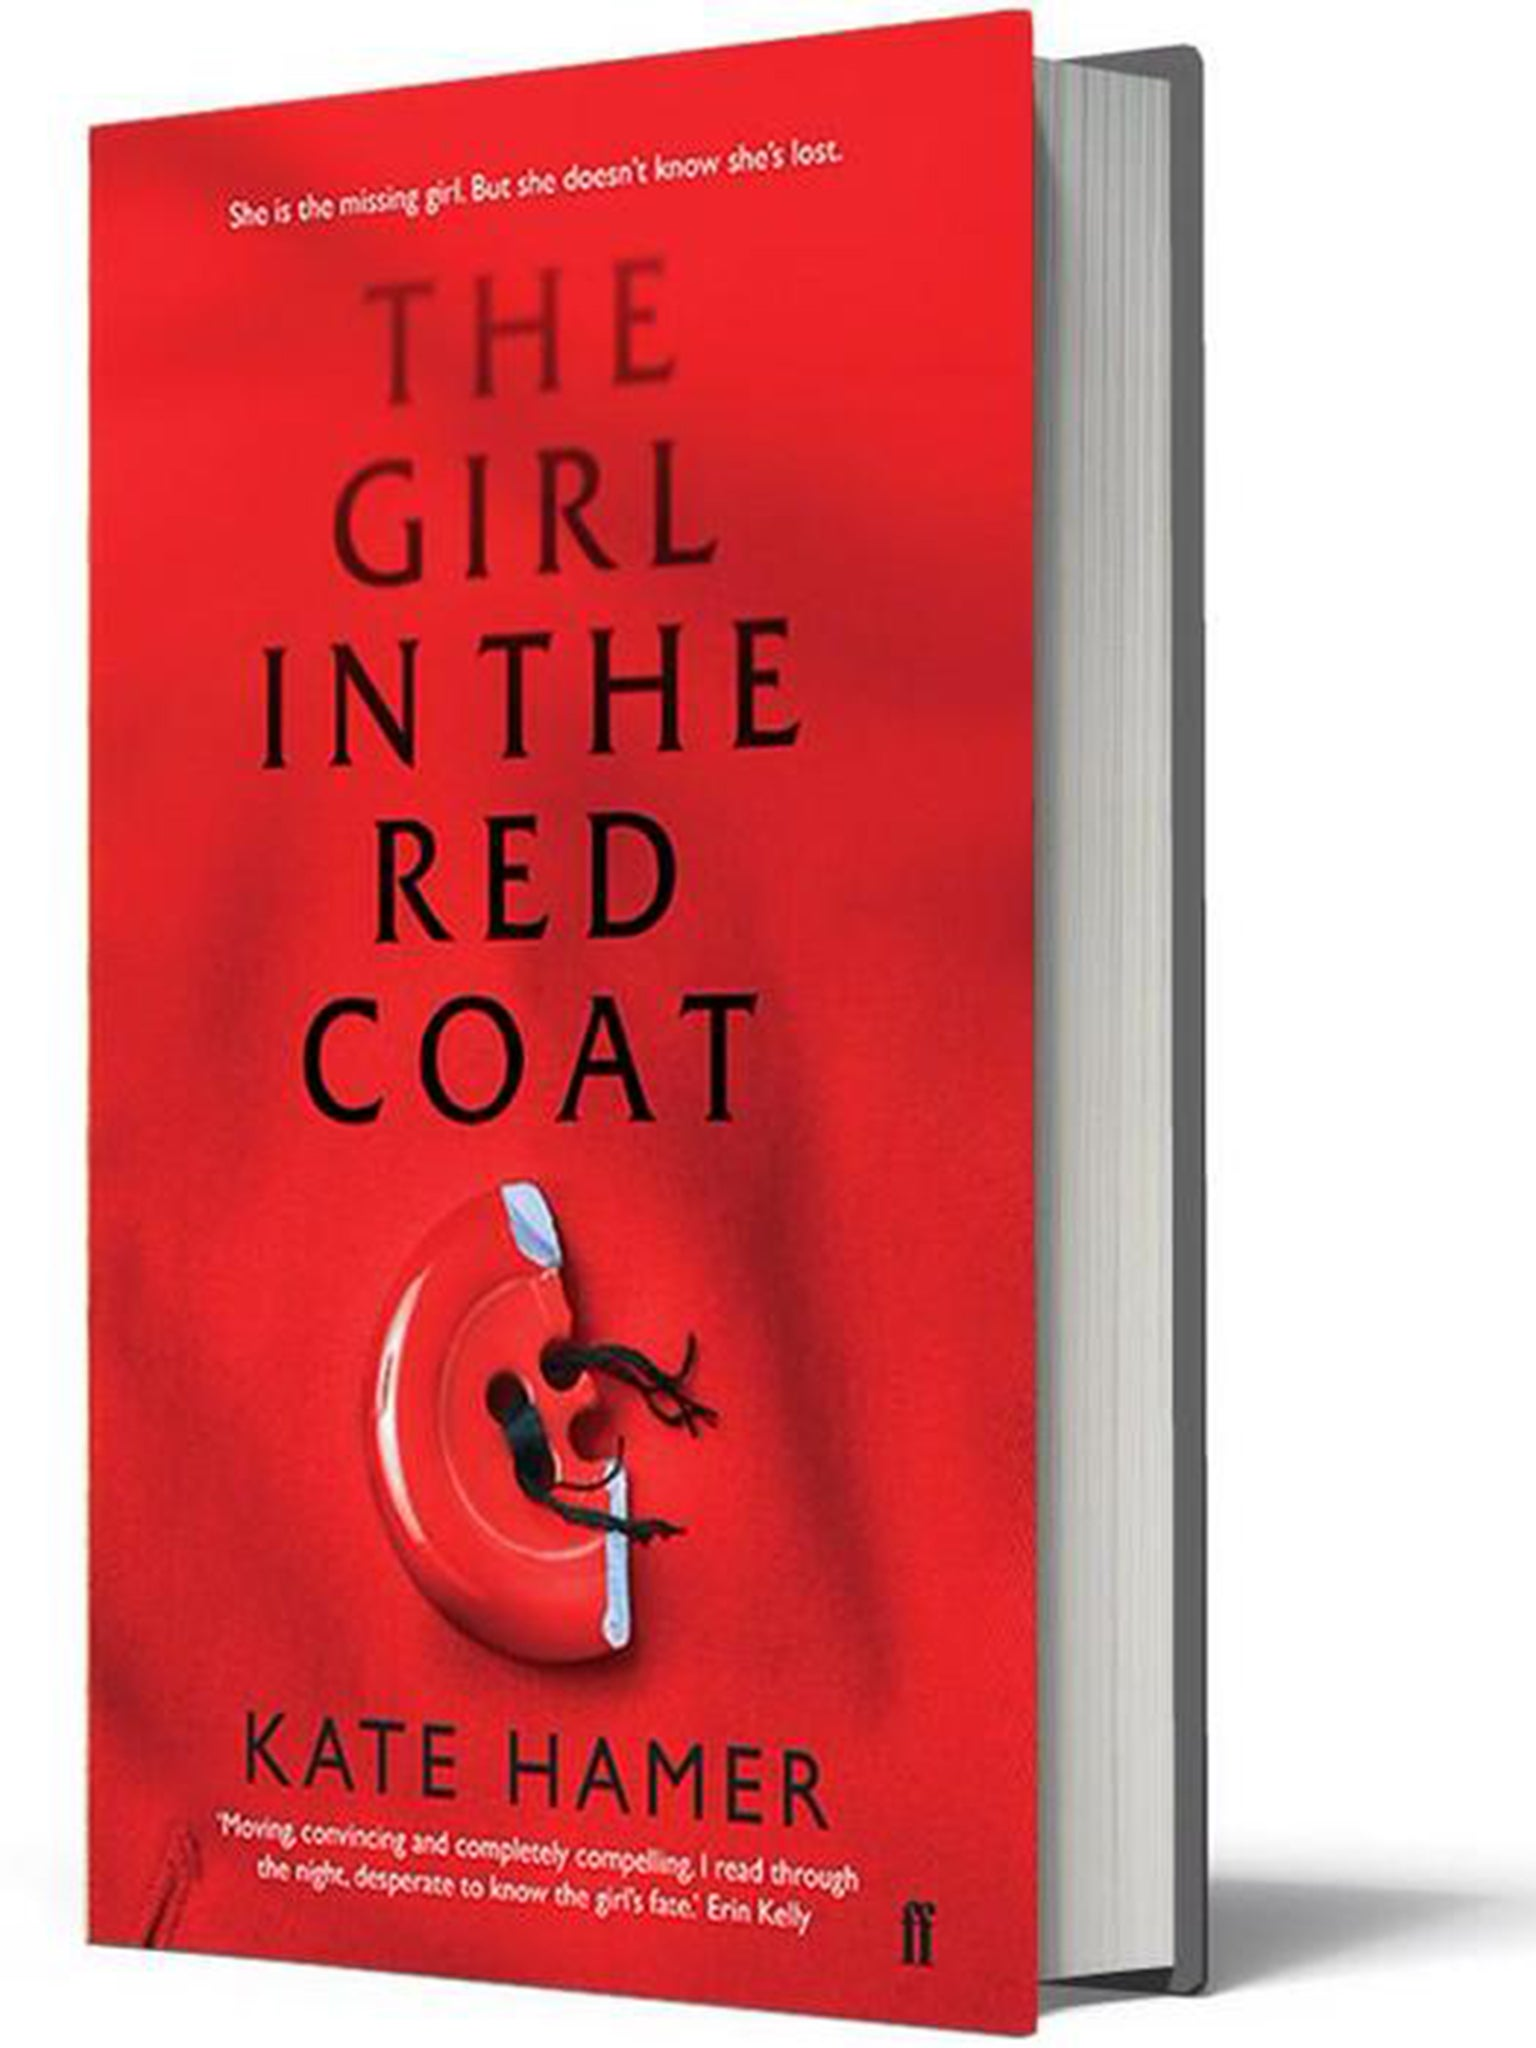 The Girl in the Red Coat author Kate Hamer: My, what big prospects